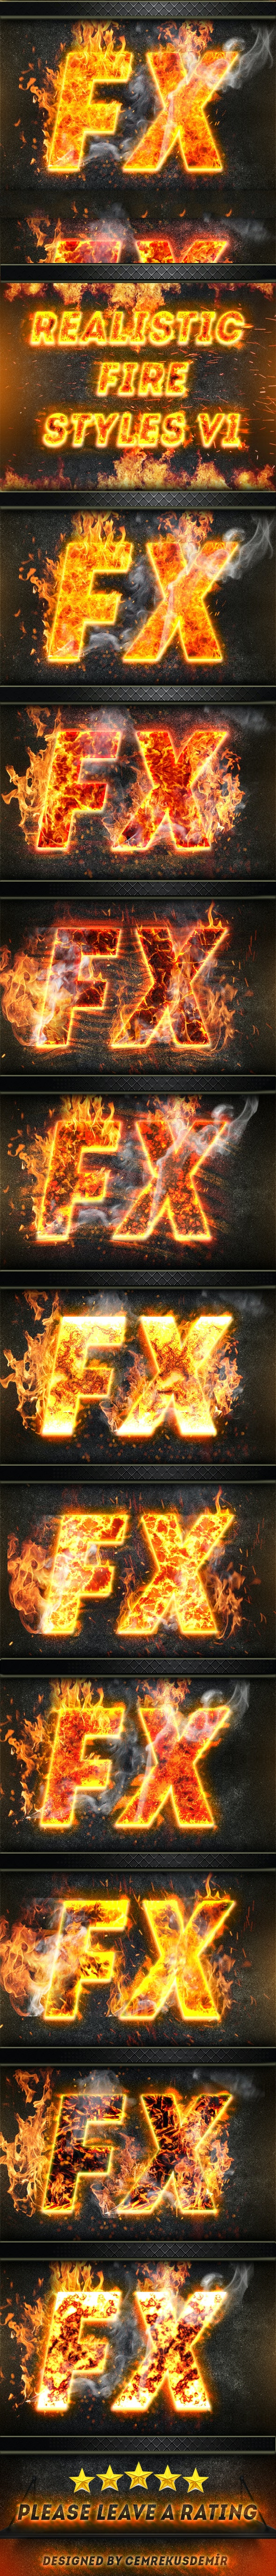 Realistic Fire Styles V1 - Text Effects Actions